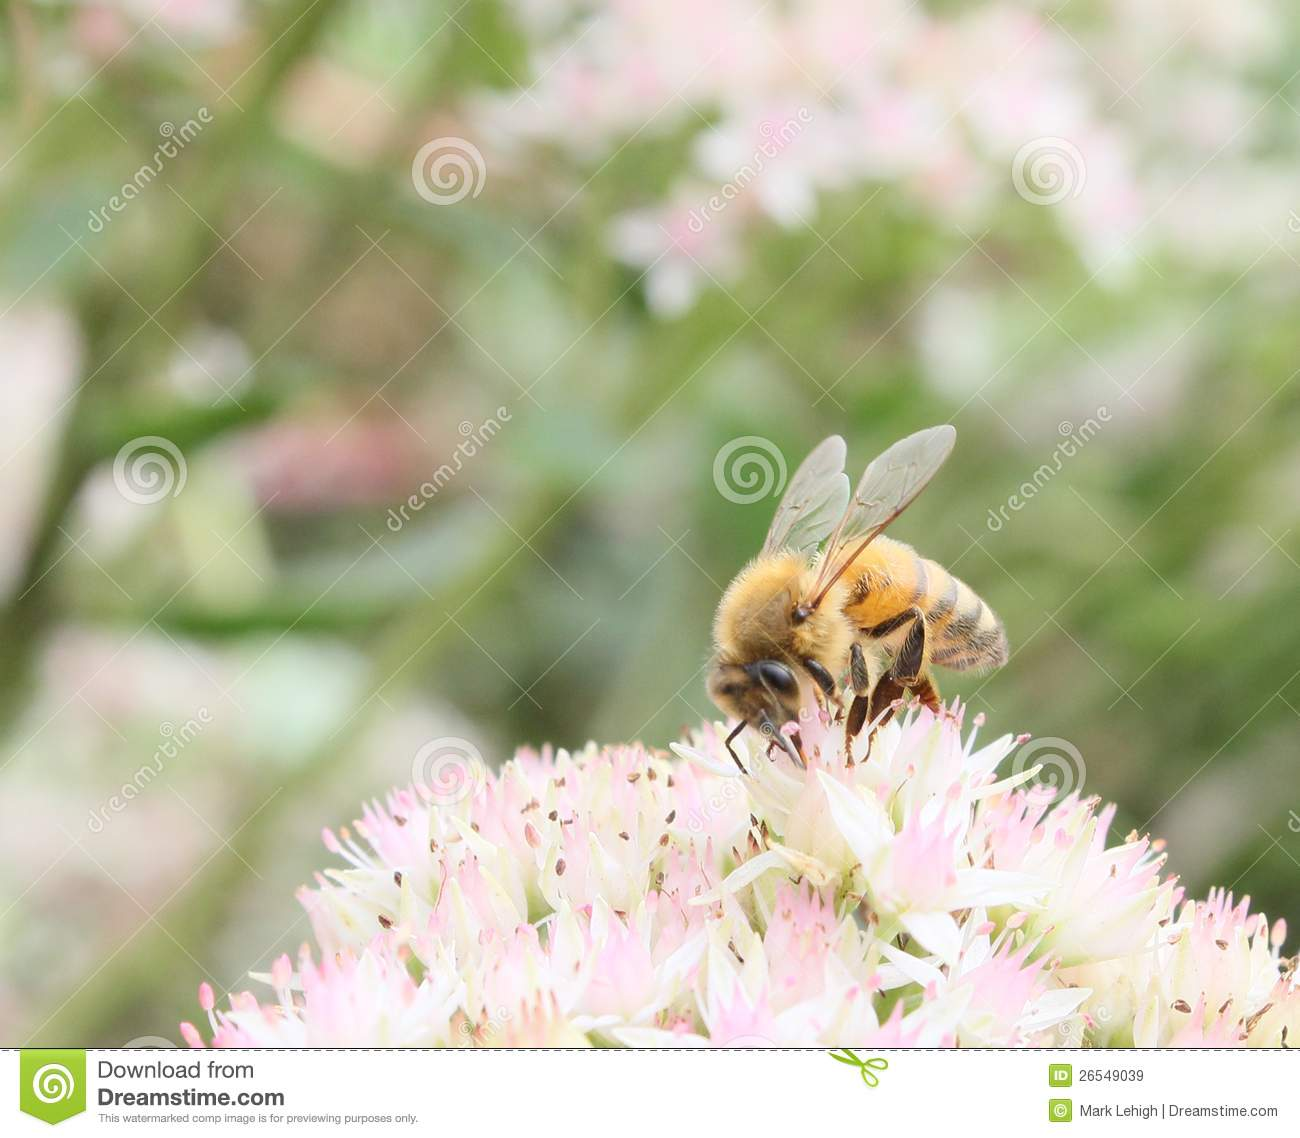 Foraging honeybee